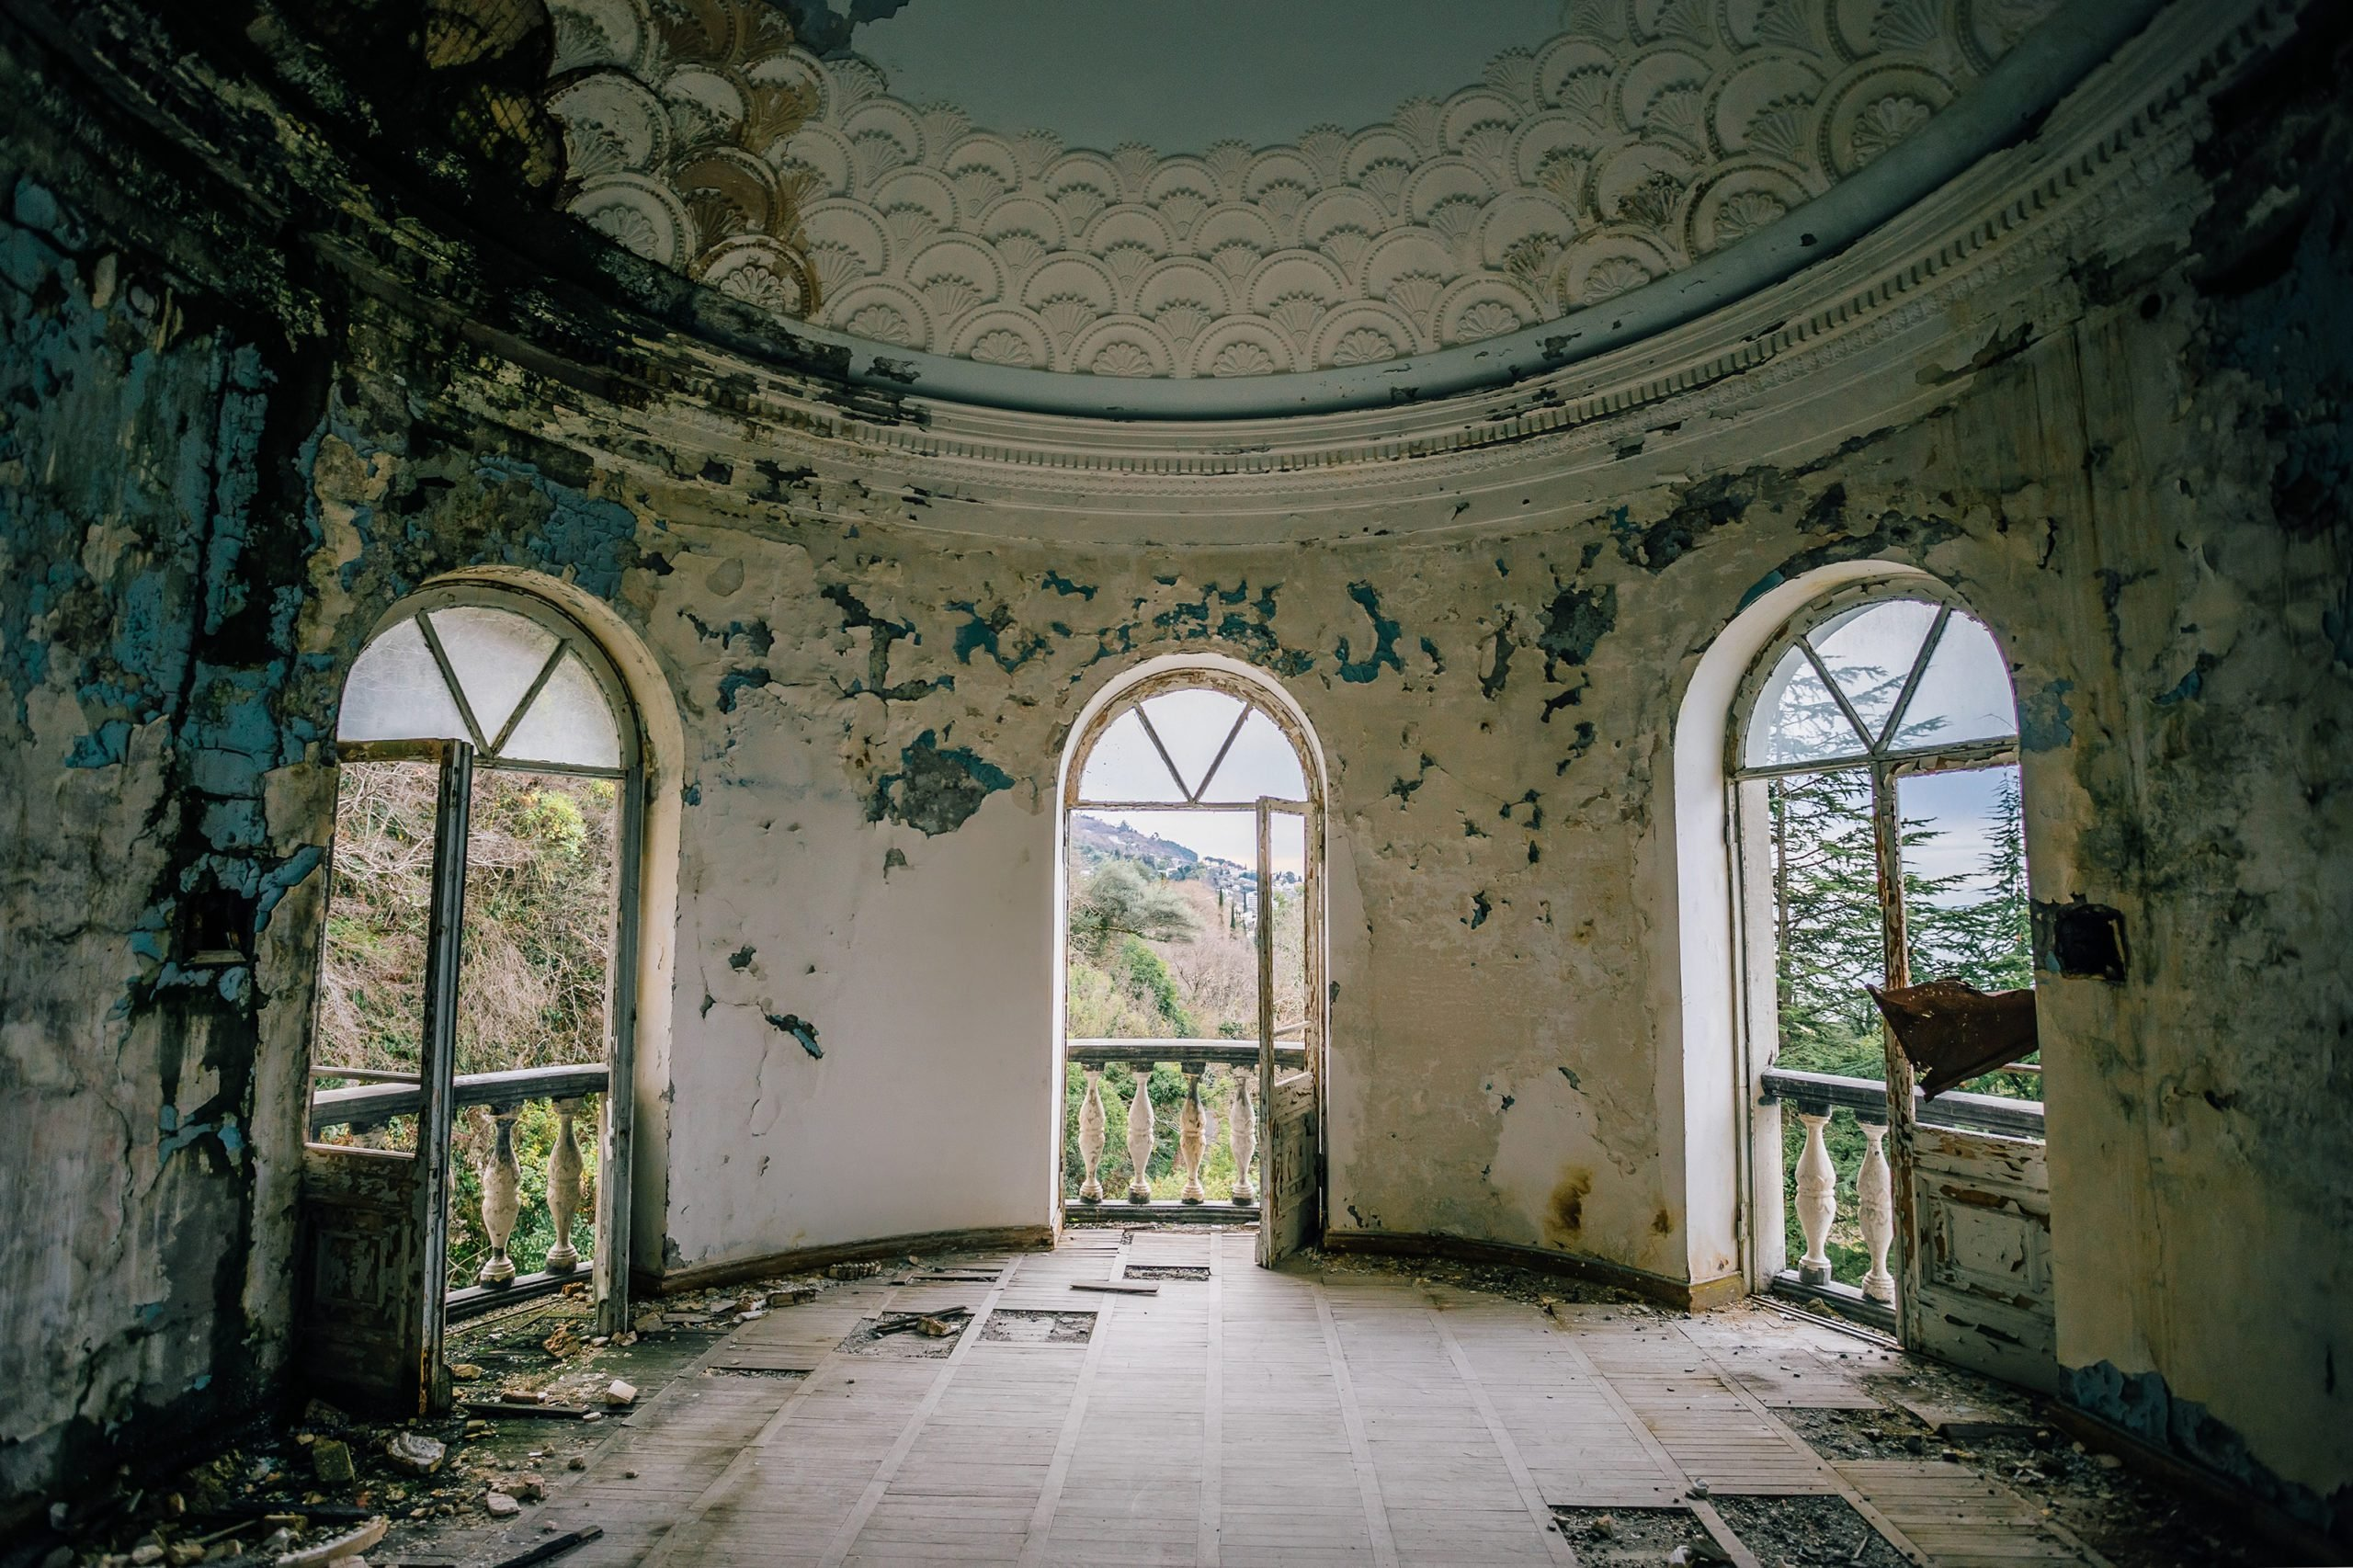 Old ruined abandoned mansion, interior of round hall